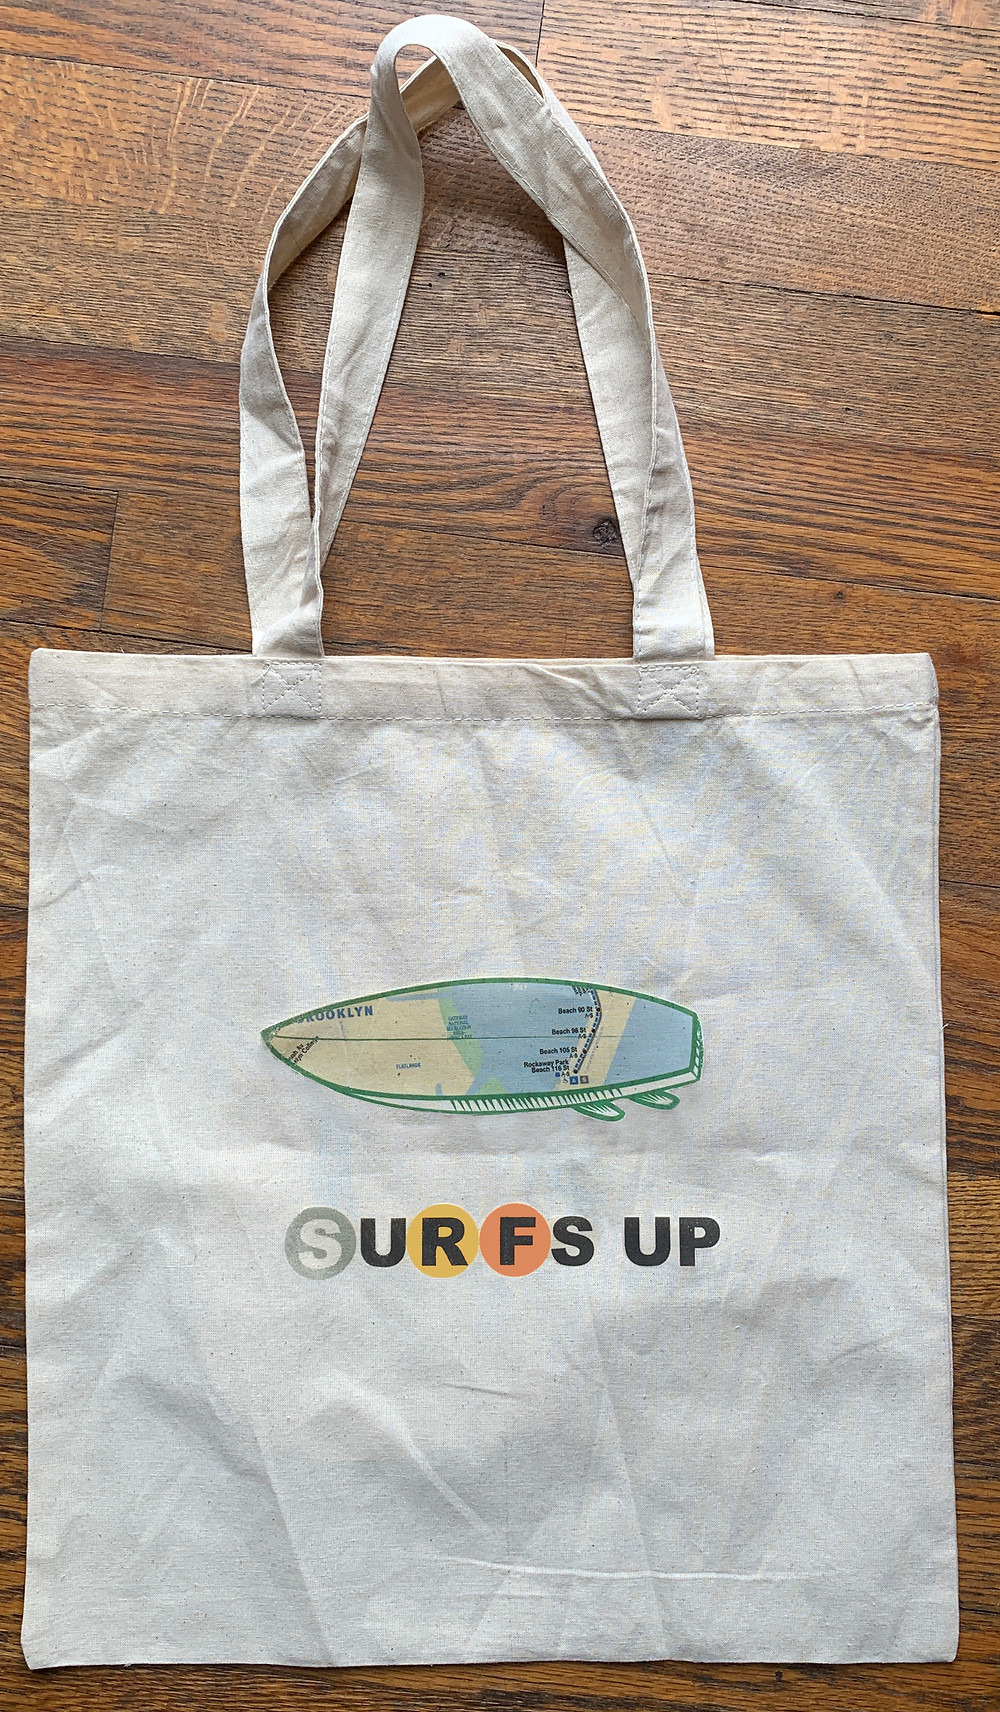 surfs up nyc graphic tote bag